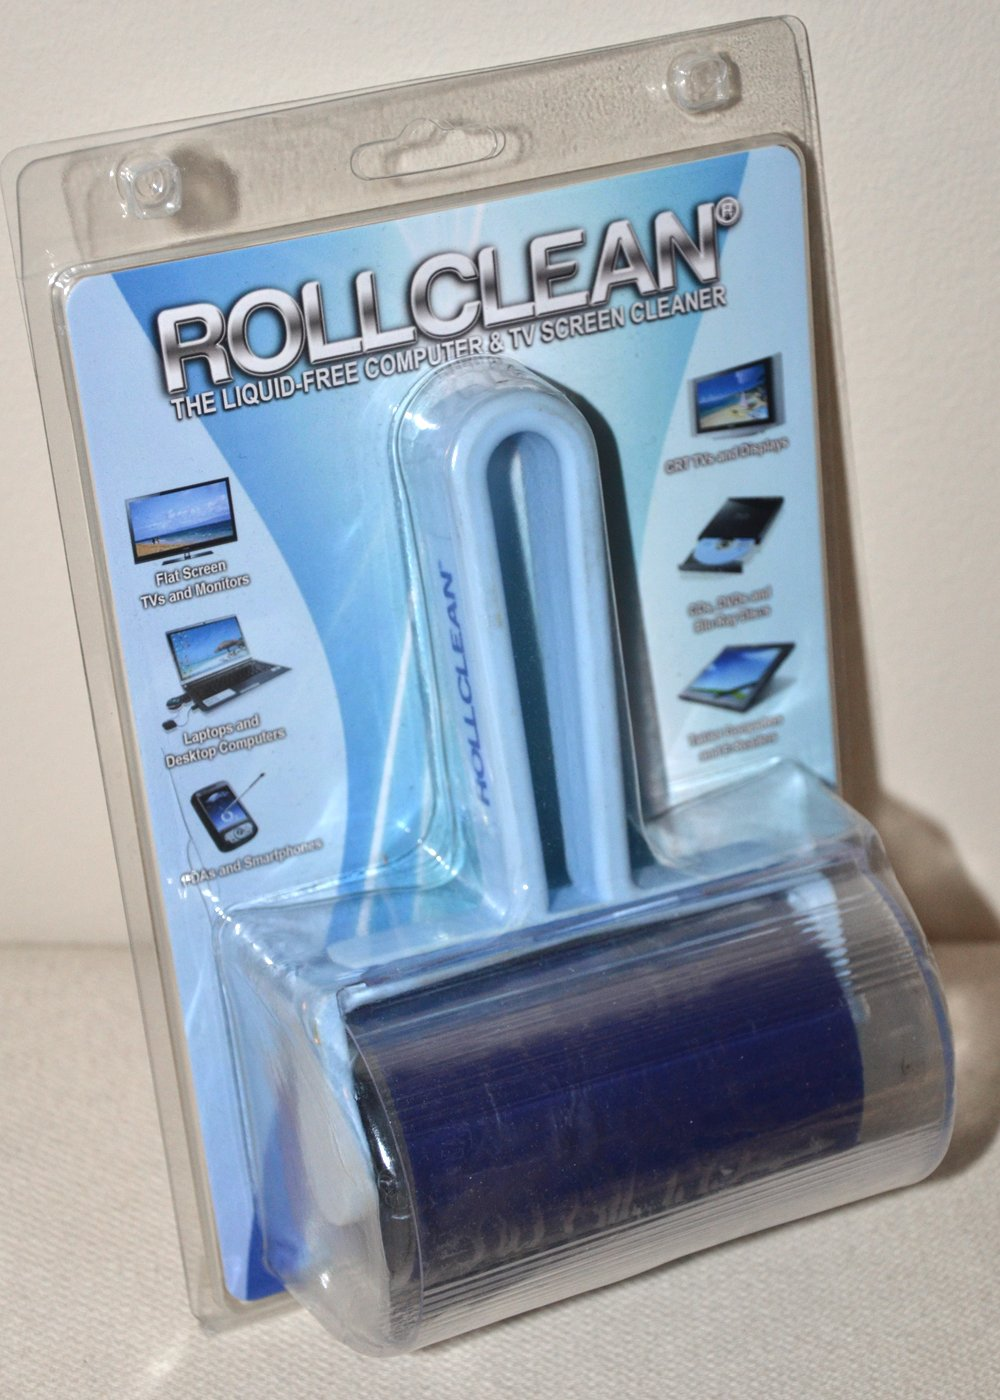 ROLLCLEAN: The liquid free, reusable TV Screen and Desk Top Monitor cleaner and all purpose flat surface cleaner.